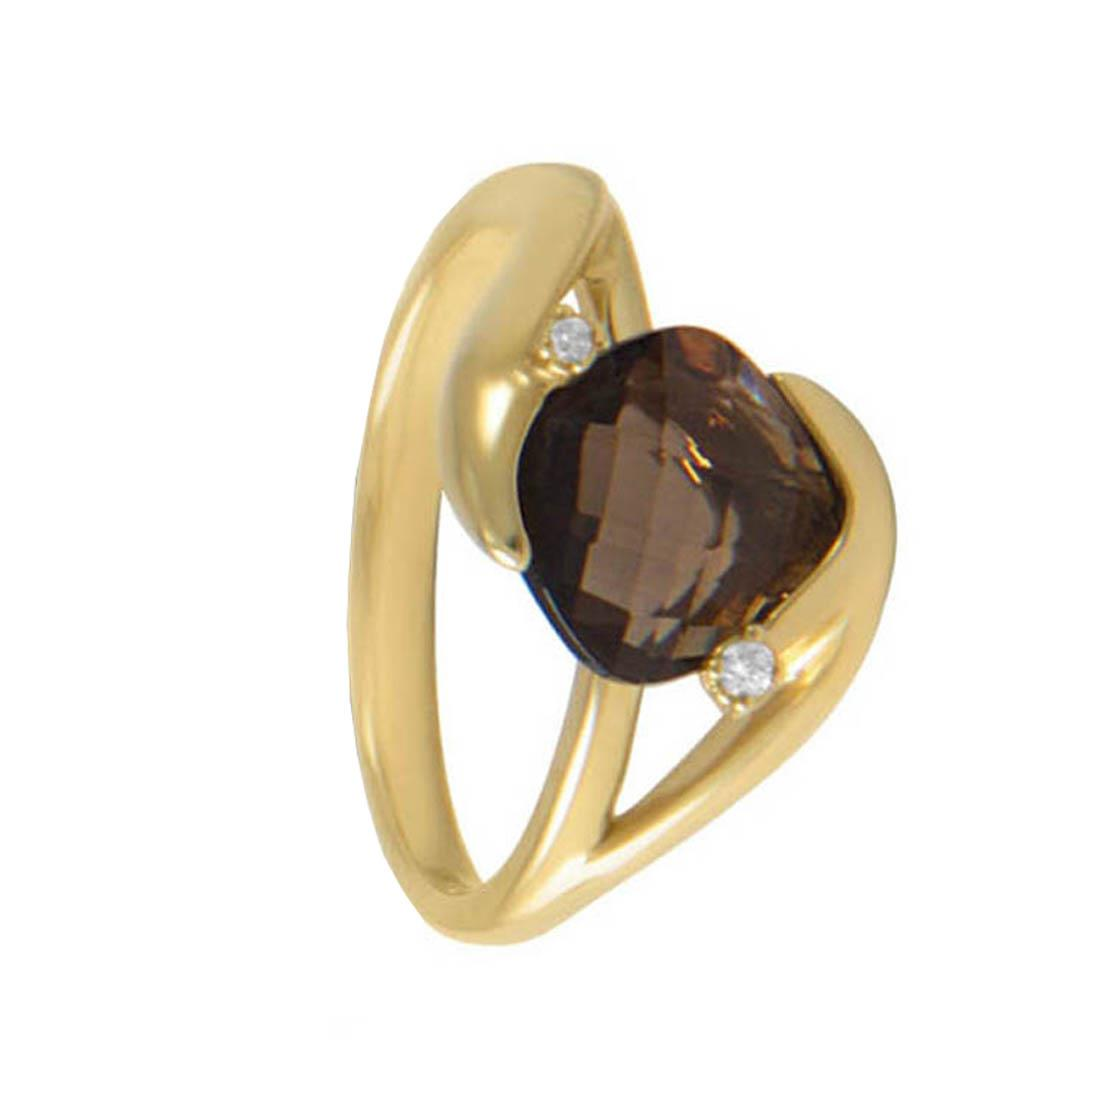 Yellow gold ring with 2.30 ct square briolette smoky quartz and 0.02 ct diamonds. 